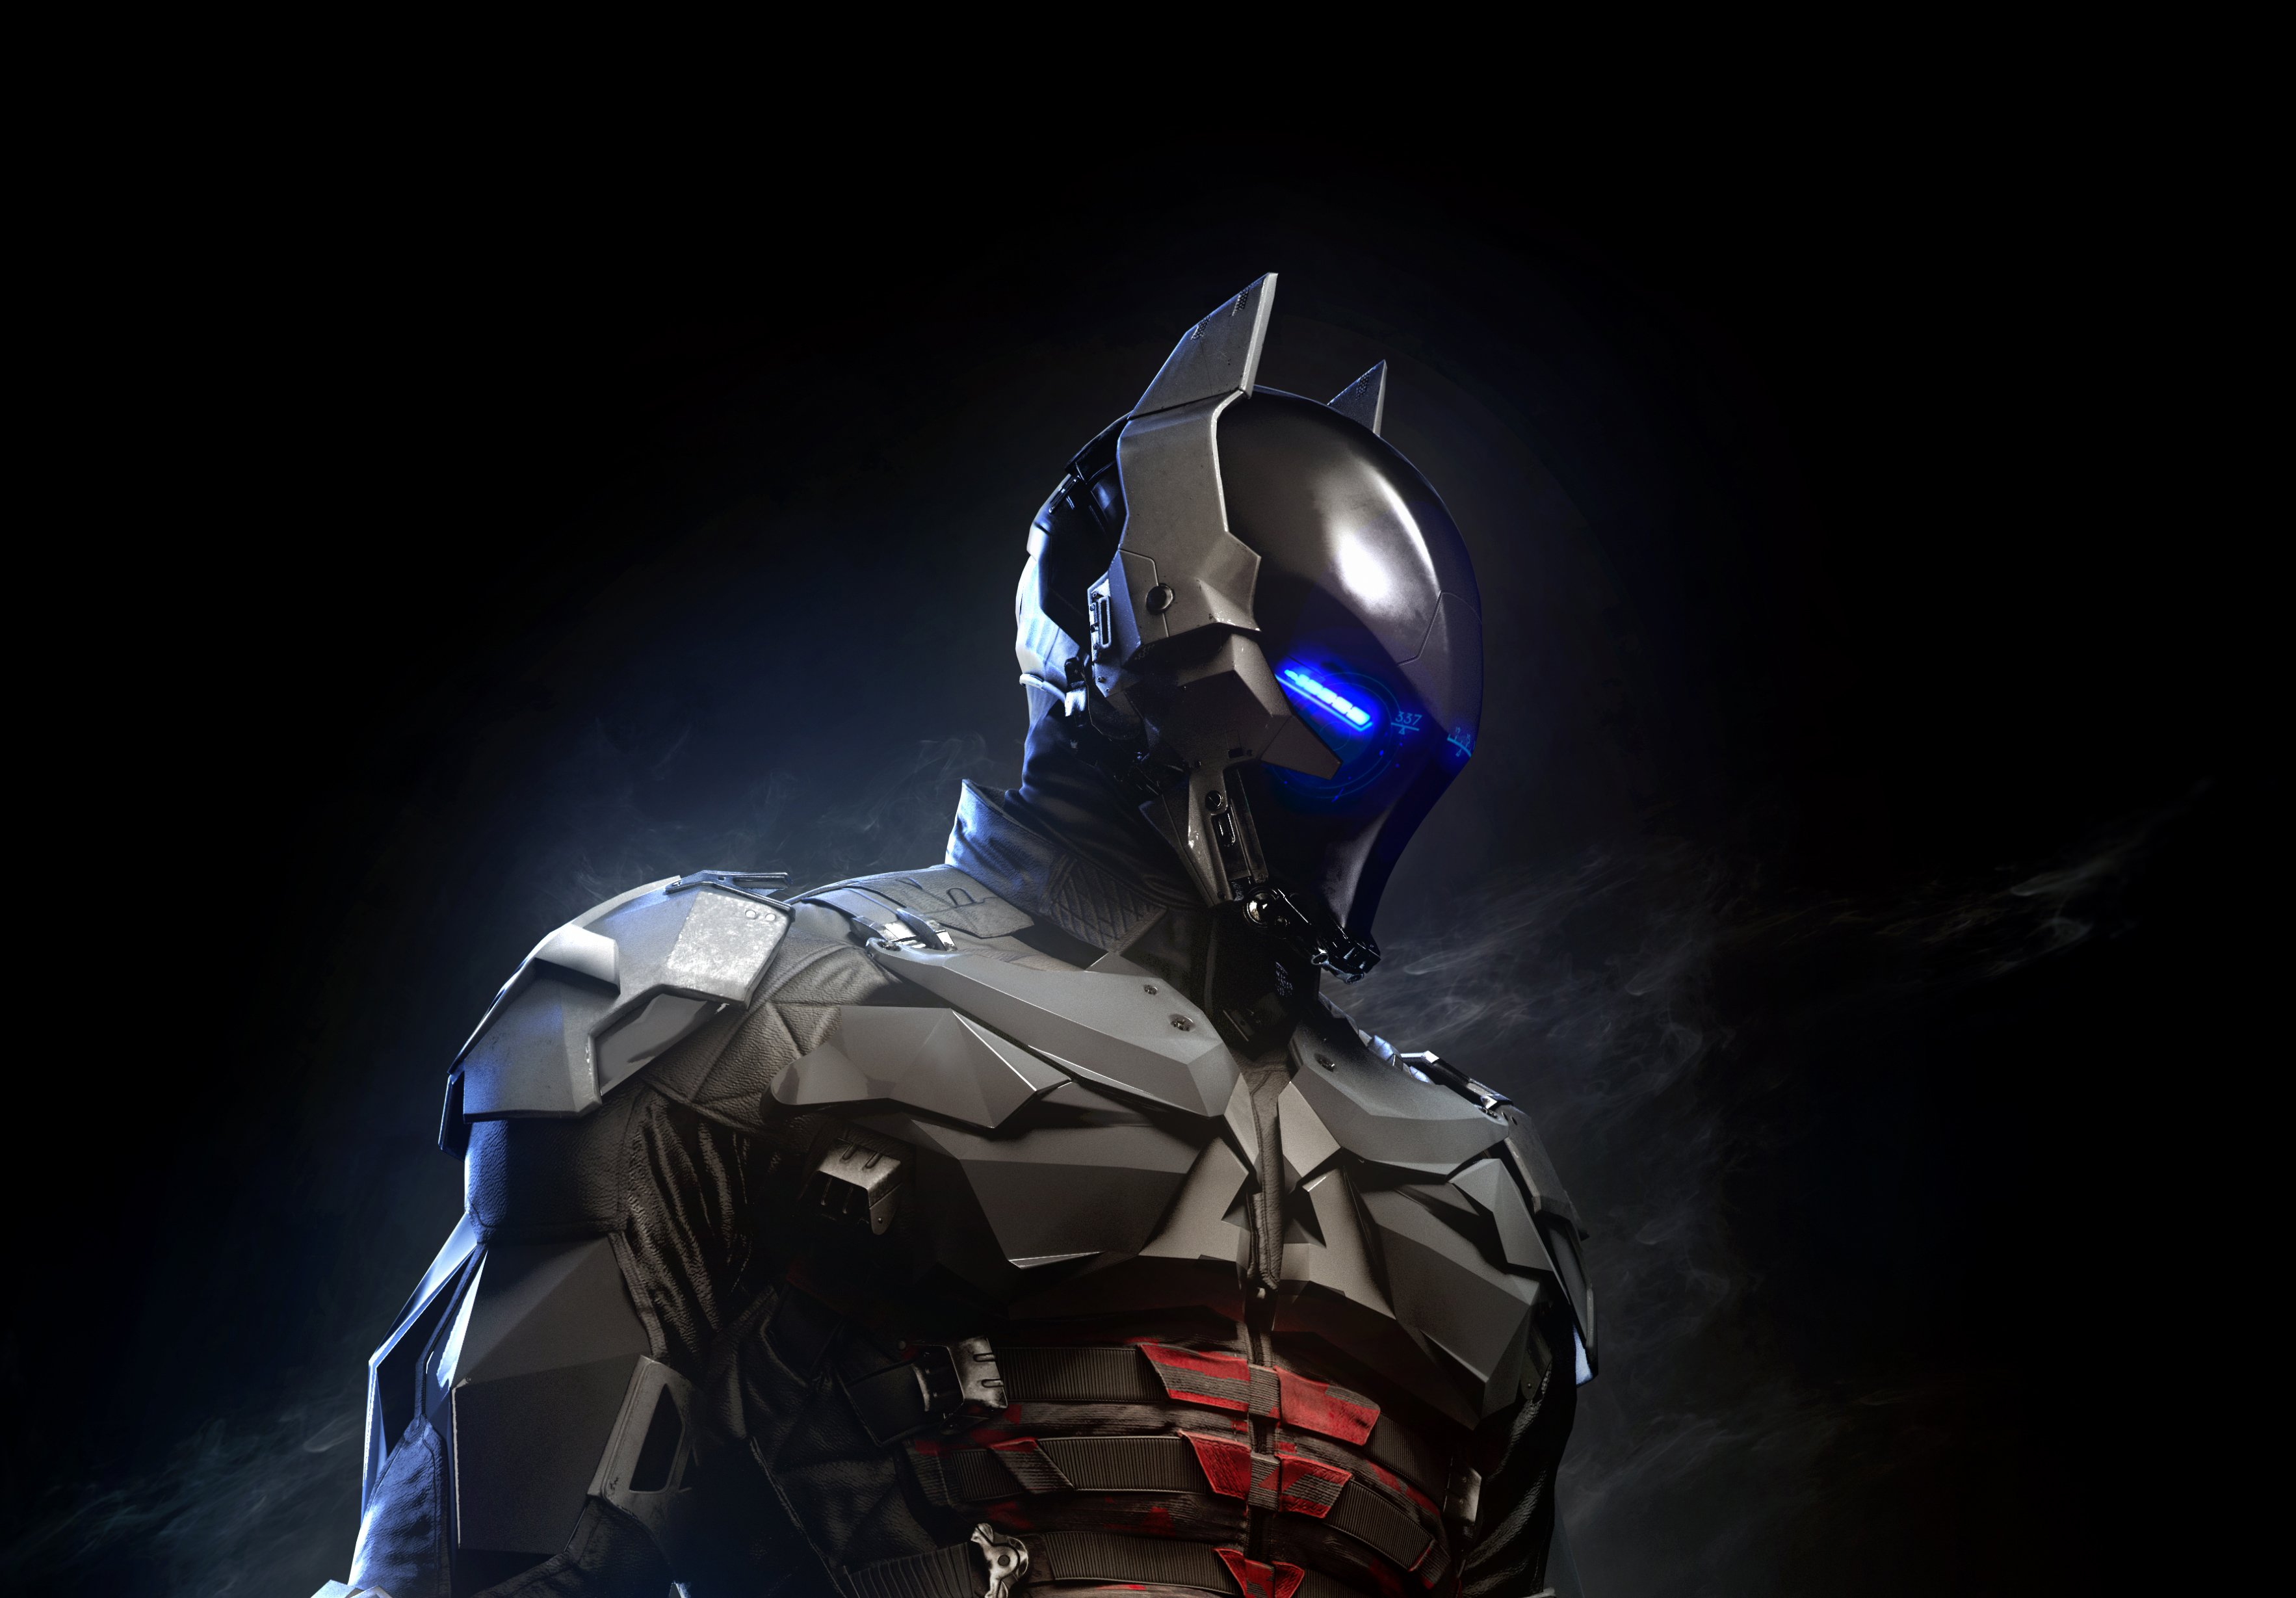 BATMAN ARKHAM KNIGHT Action Adventure Superhero Comic Dark Knight Warrior Fantasy Sci Fi Comics Wallpaper